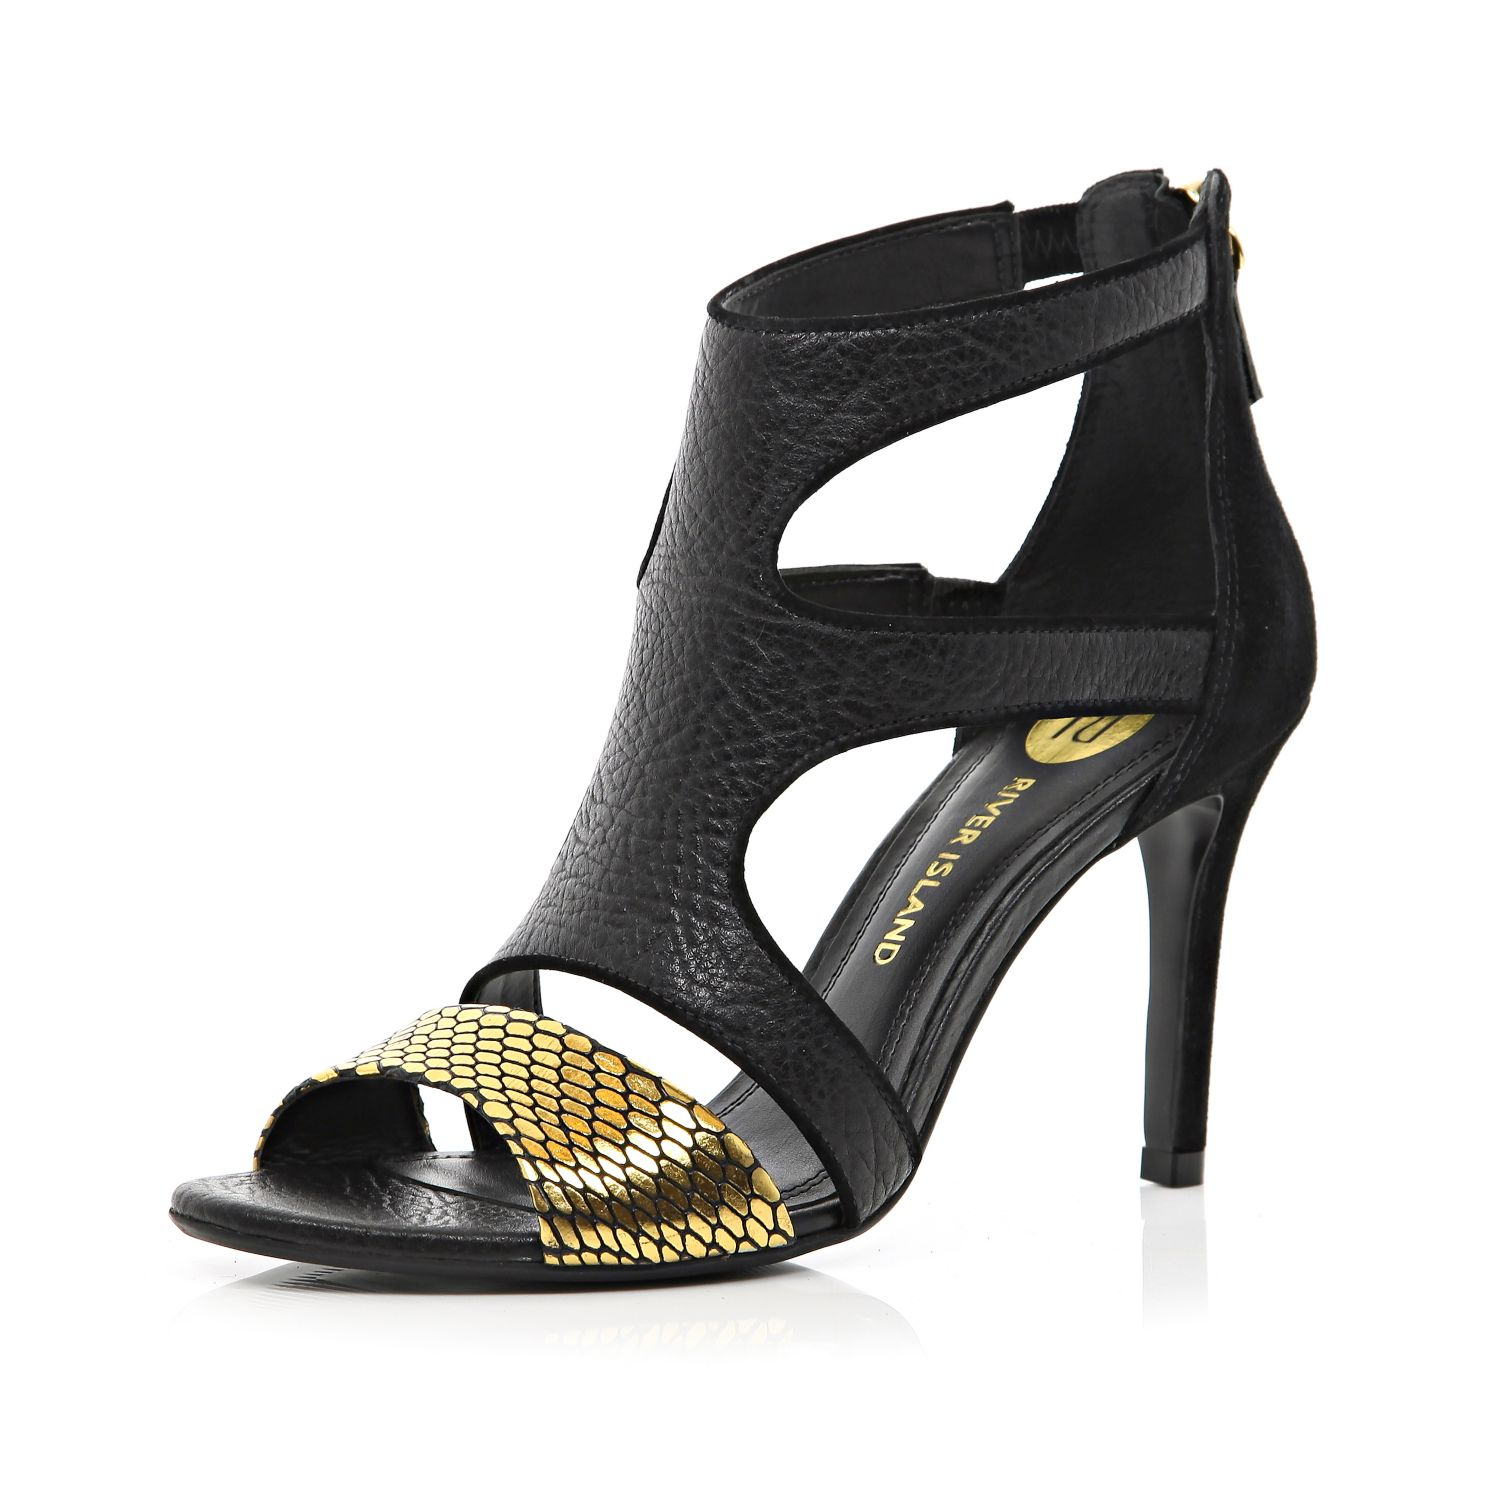 River island Black Metallic Strappy Mid Heel Sandals in Black  Lyst